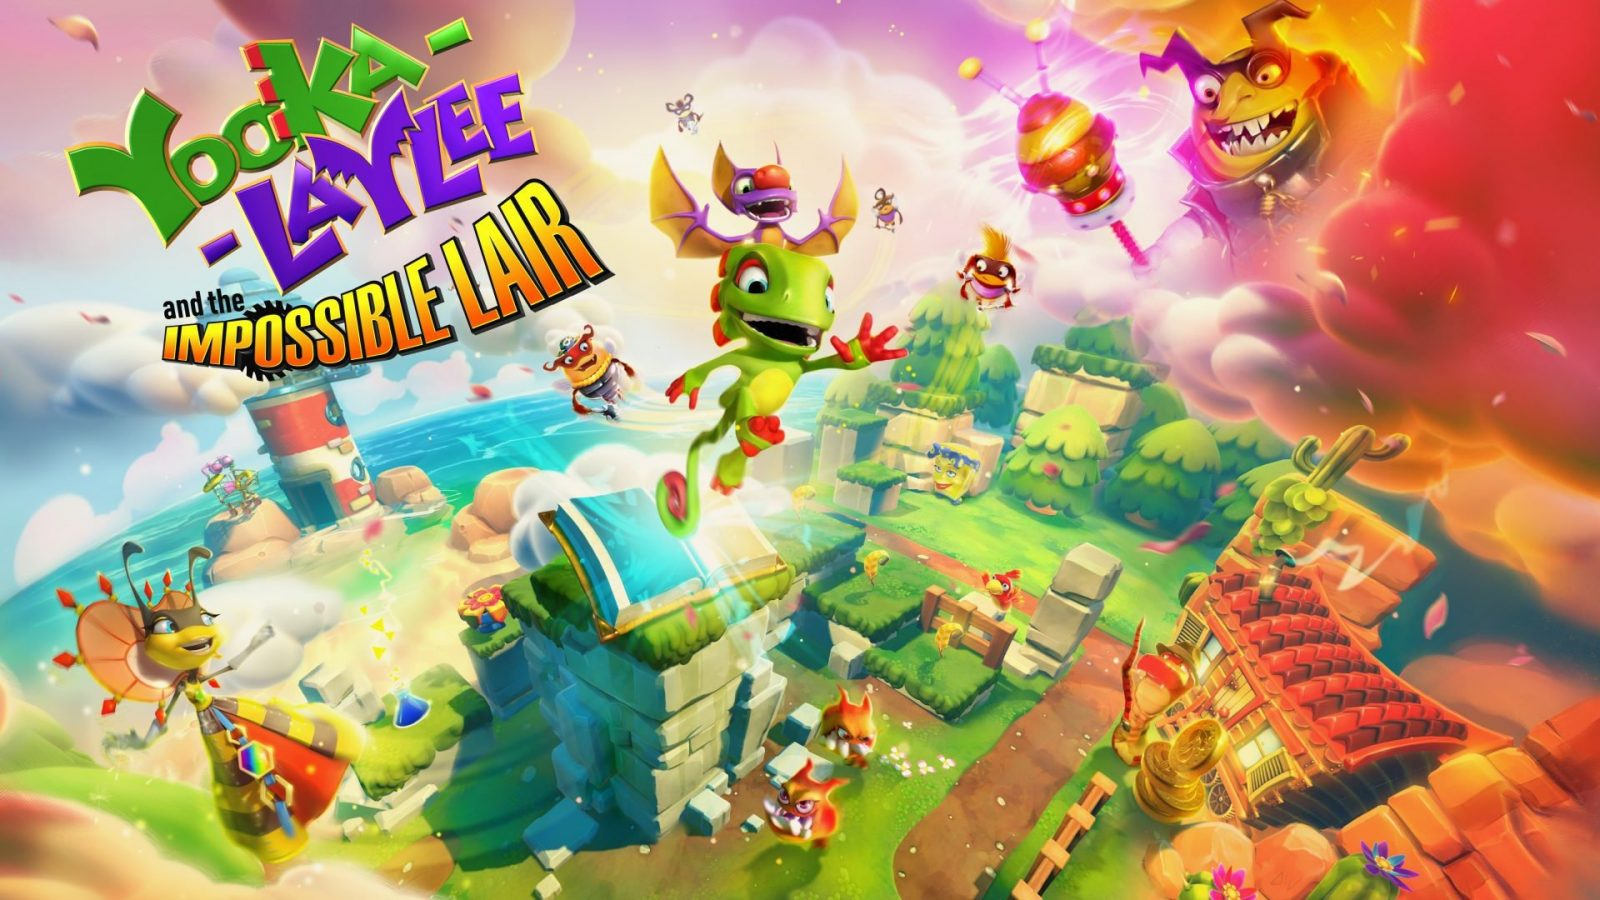 Yooka-Laylee and the Impossible Lair Out This October